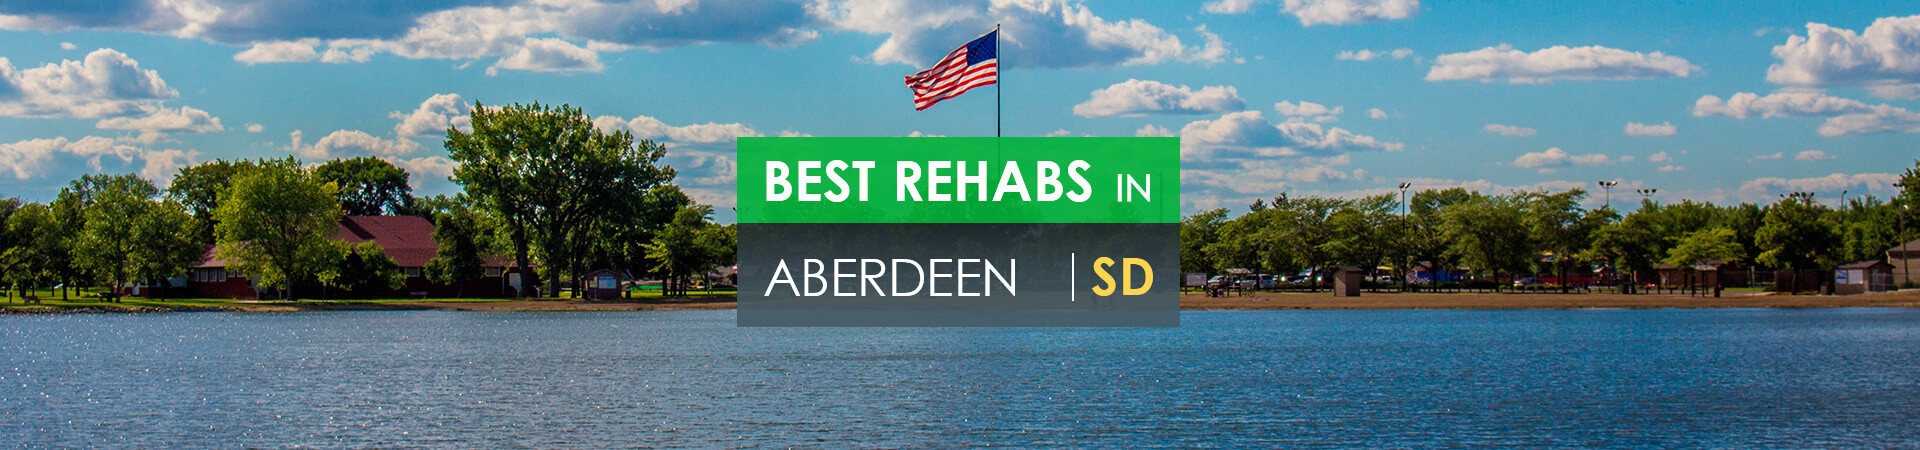 Best rehabs in Aberdeen, SD